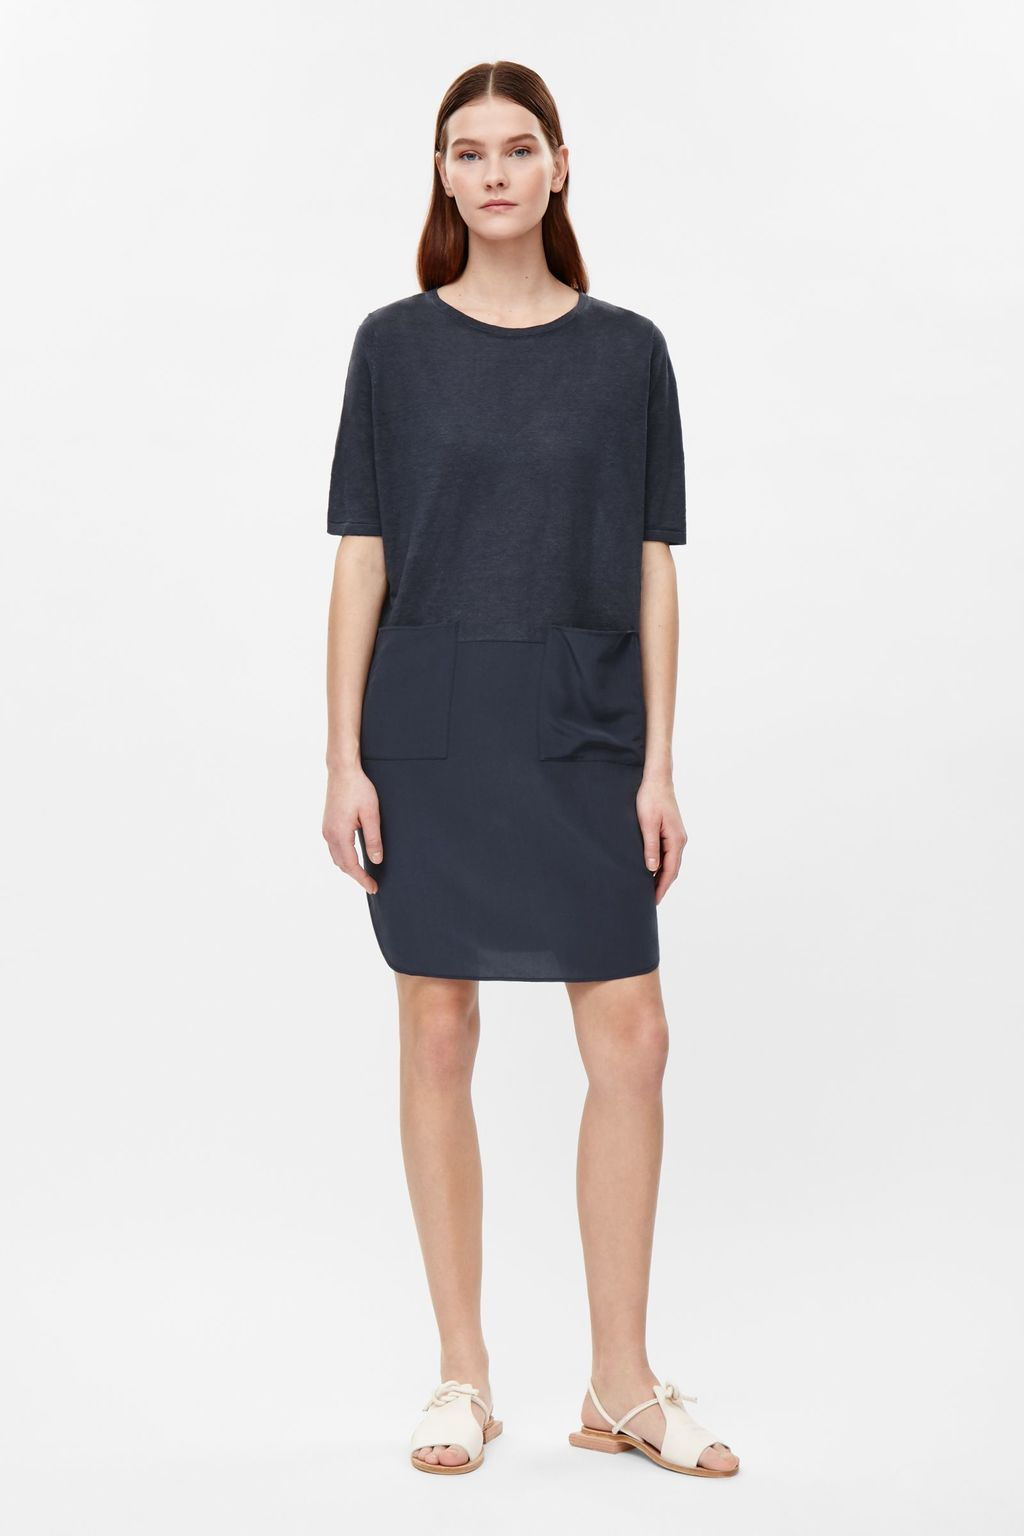 Oversized Dress With Silk Skirt - style: shift; neckline: round neck; pattern: plain; predominant colour: navy; occasions: casual; length: just above the knee; fit: body skimming; fibres: cotton - mix; sleeve length: short sleeve; sleeve style: standard; pattern type: fabric; texture group: other - light to midweight; season: s/s 2016; wardrobe: basic